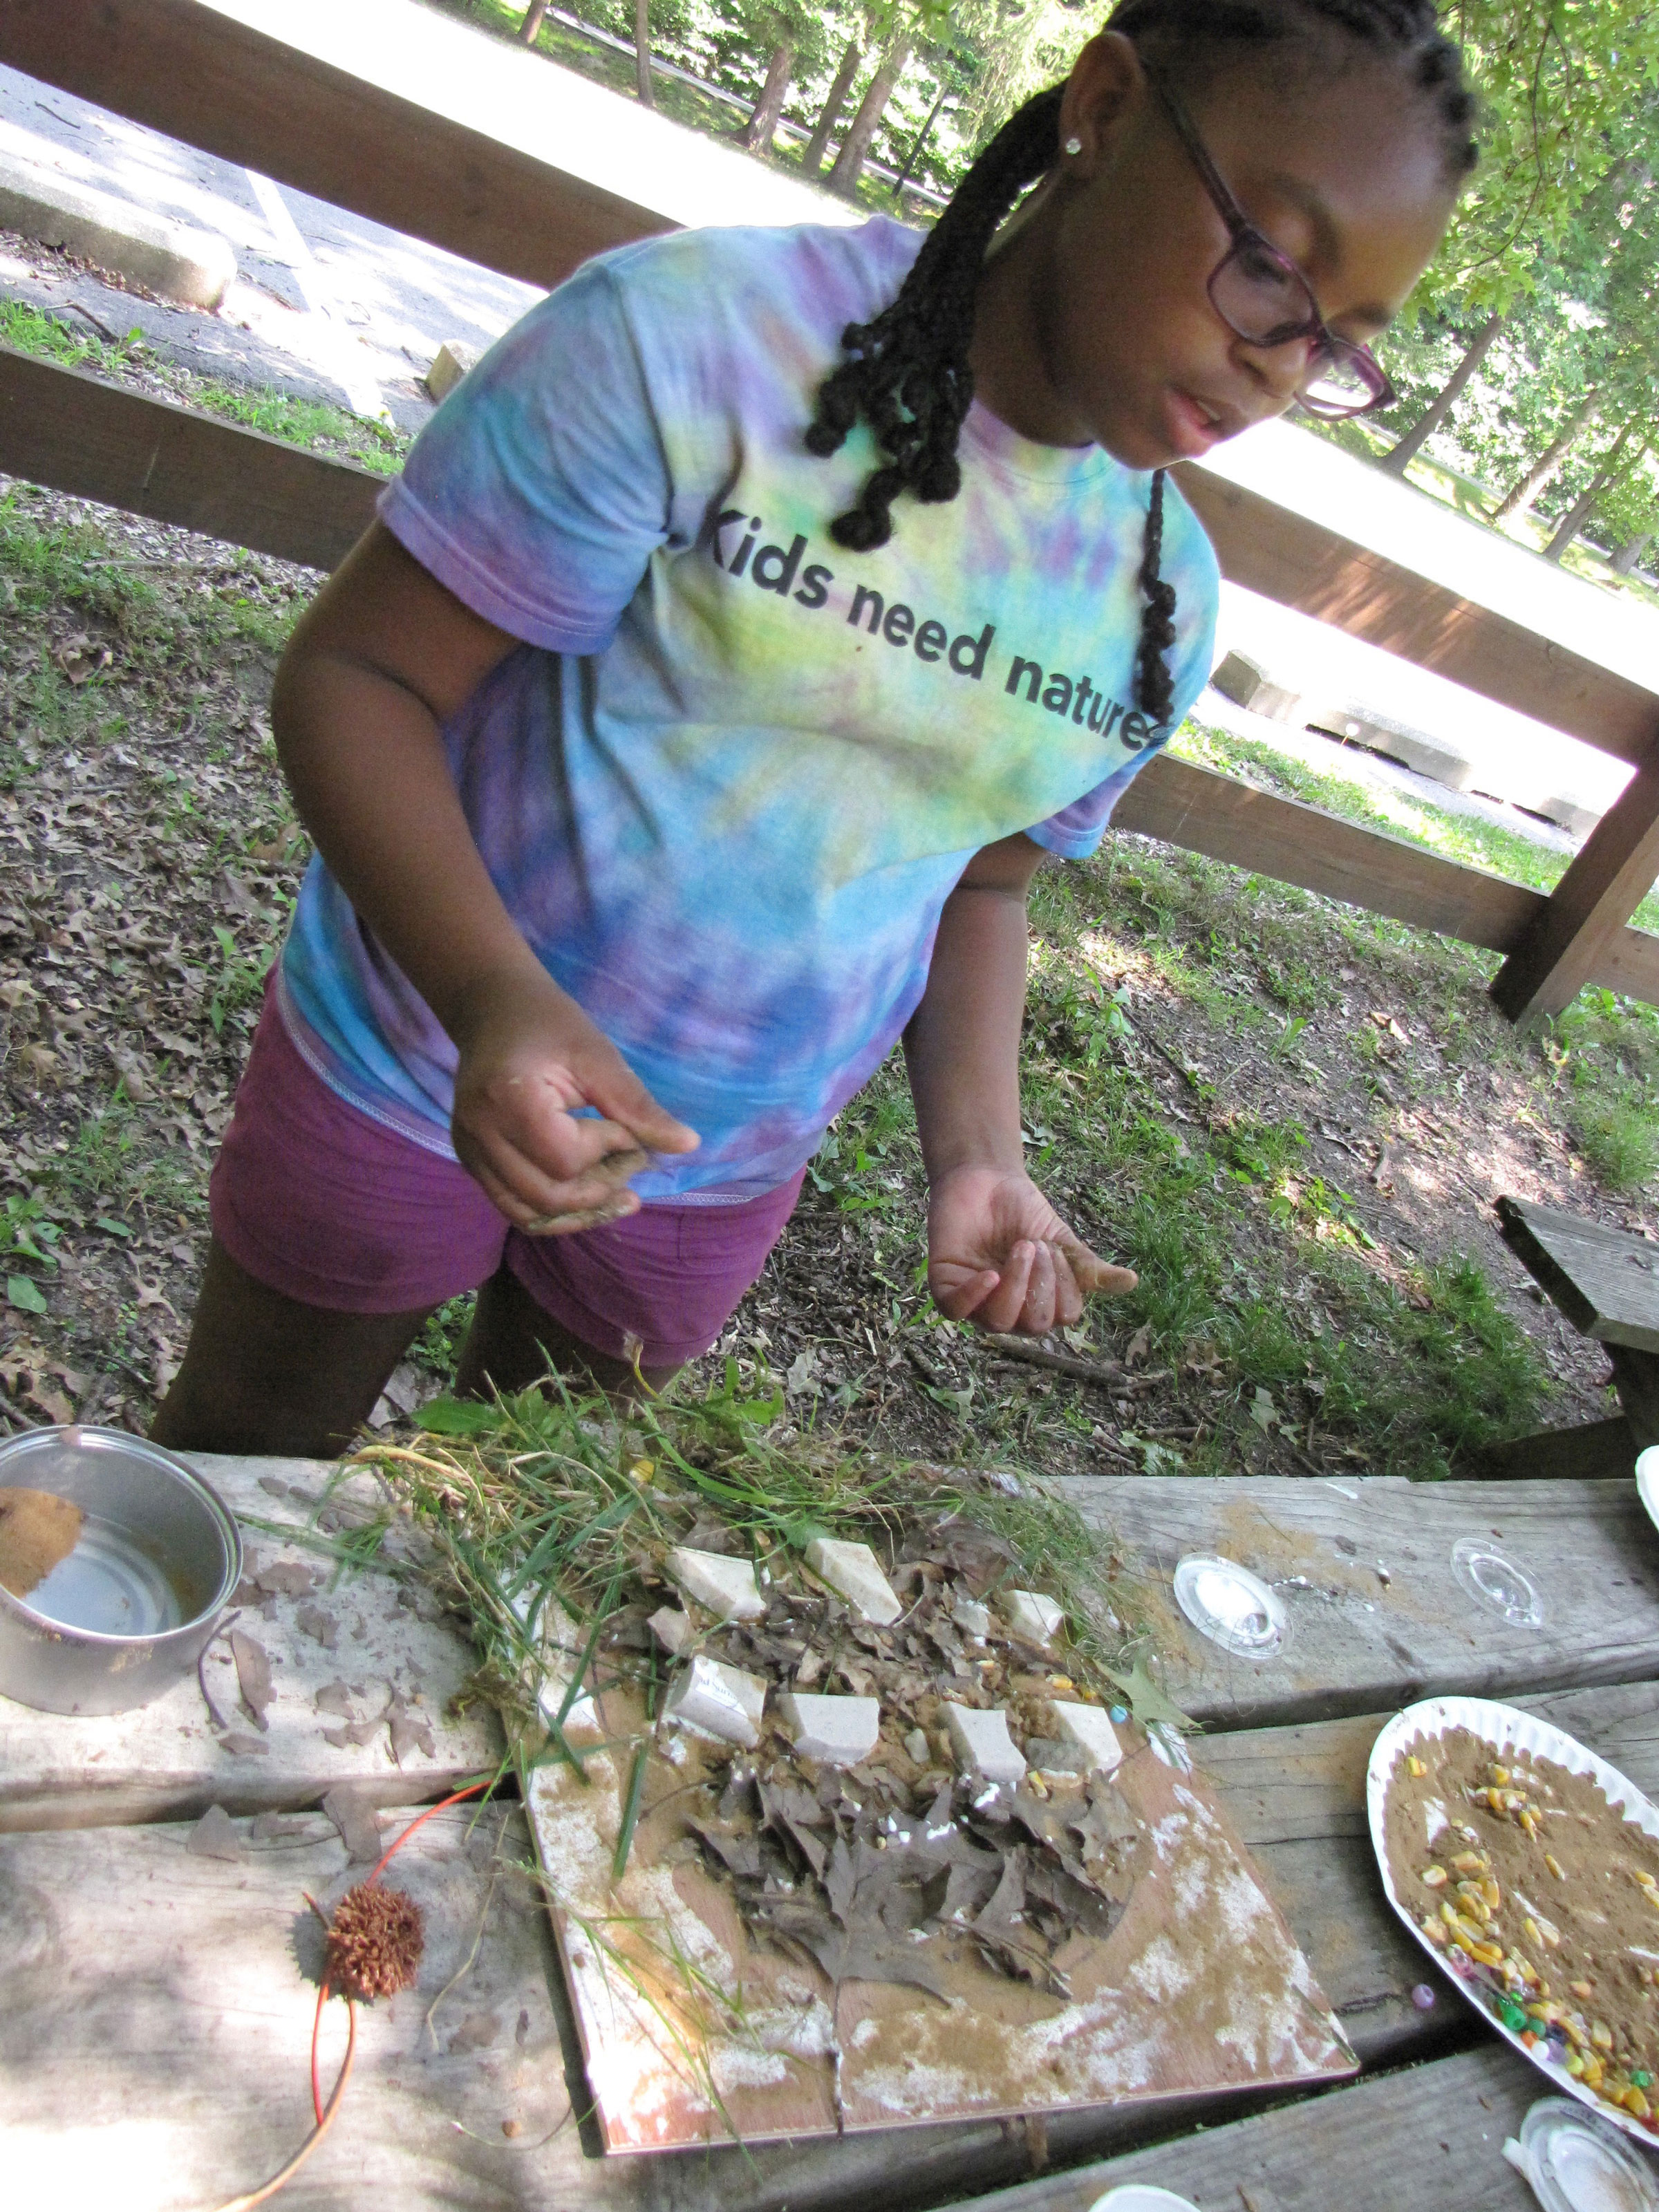 A camper explains the ecosystems represented in her composition.